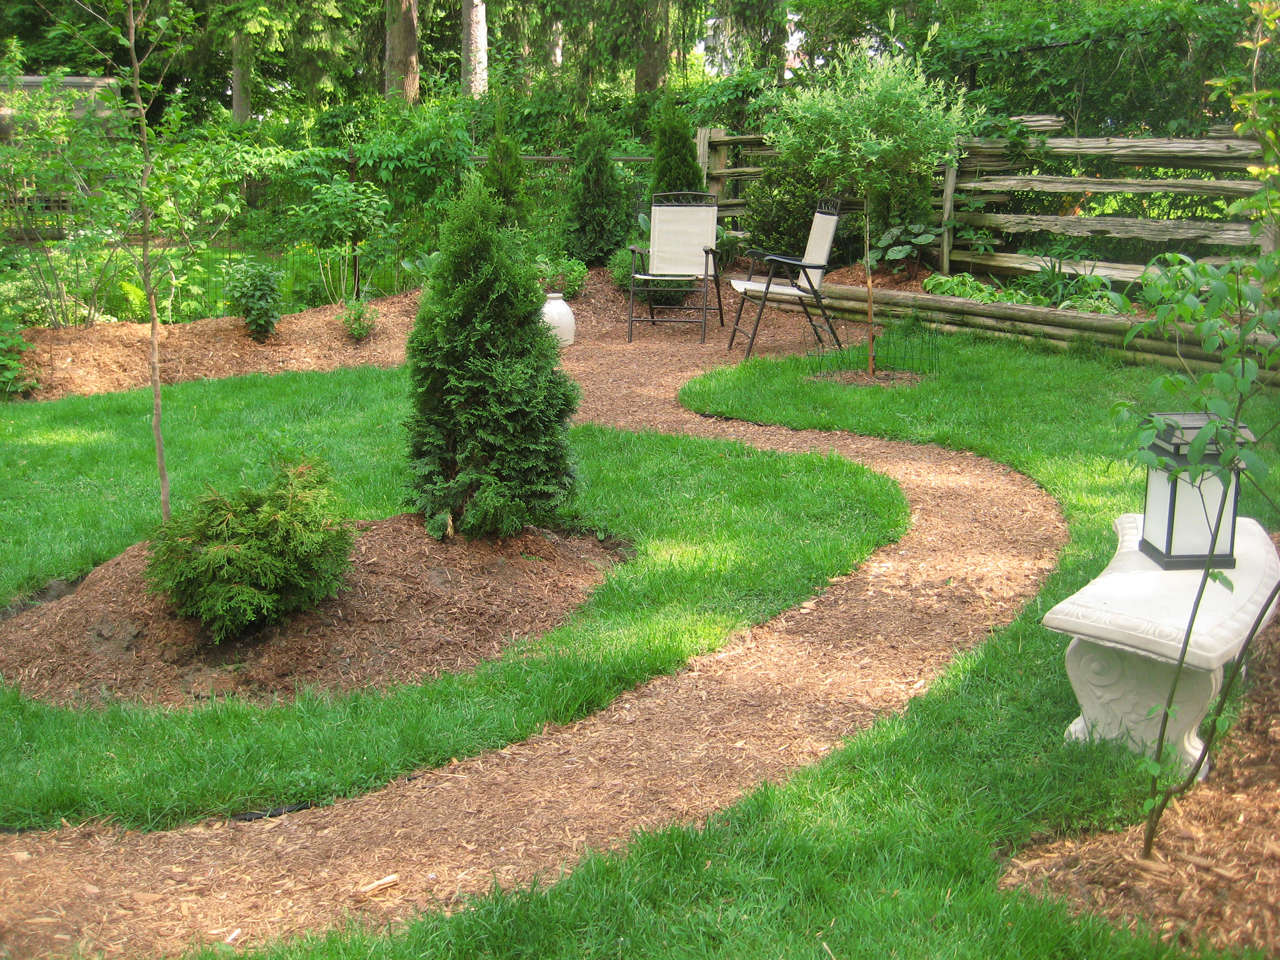 In-front-of-sitting-area-natural-landsca